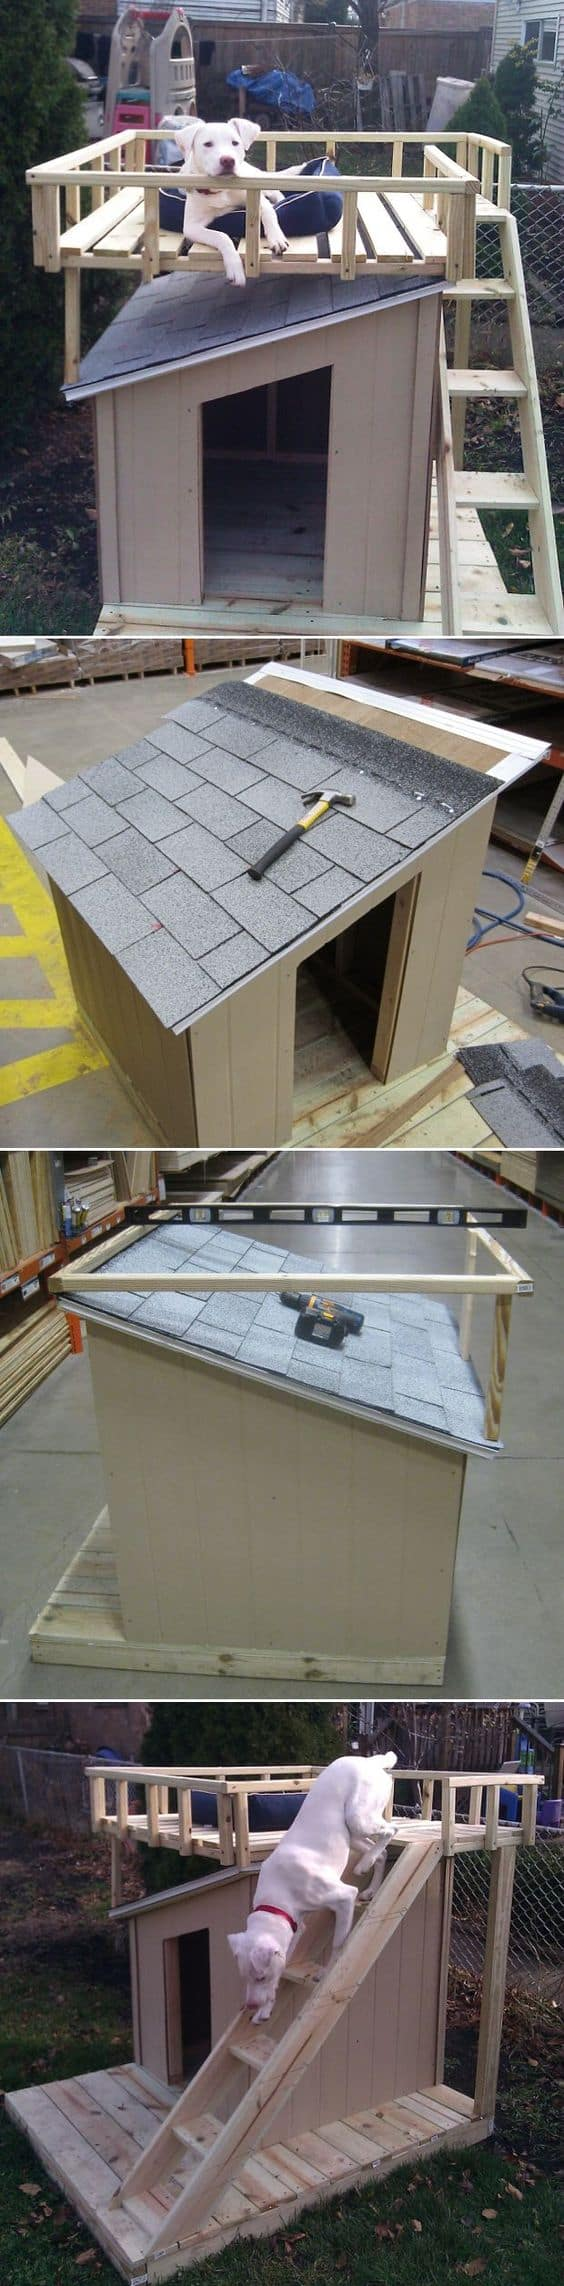 2. DIY DOG HOUSE WITH SKY TERRACE